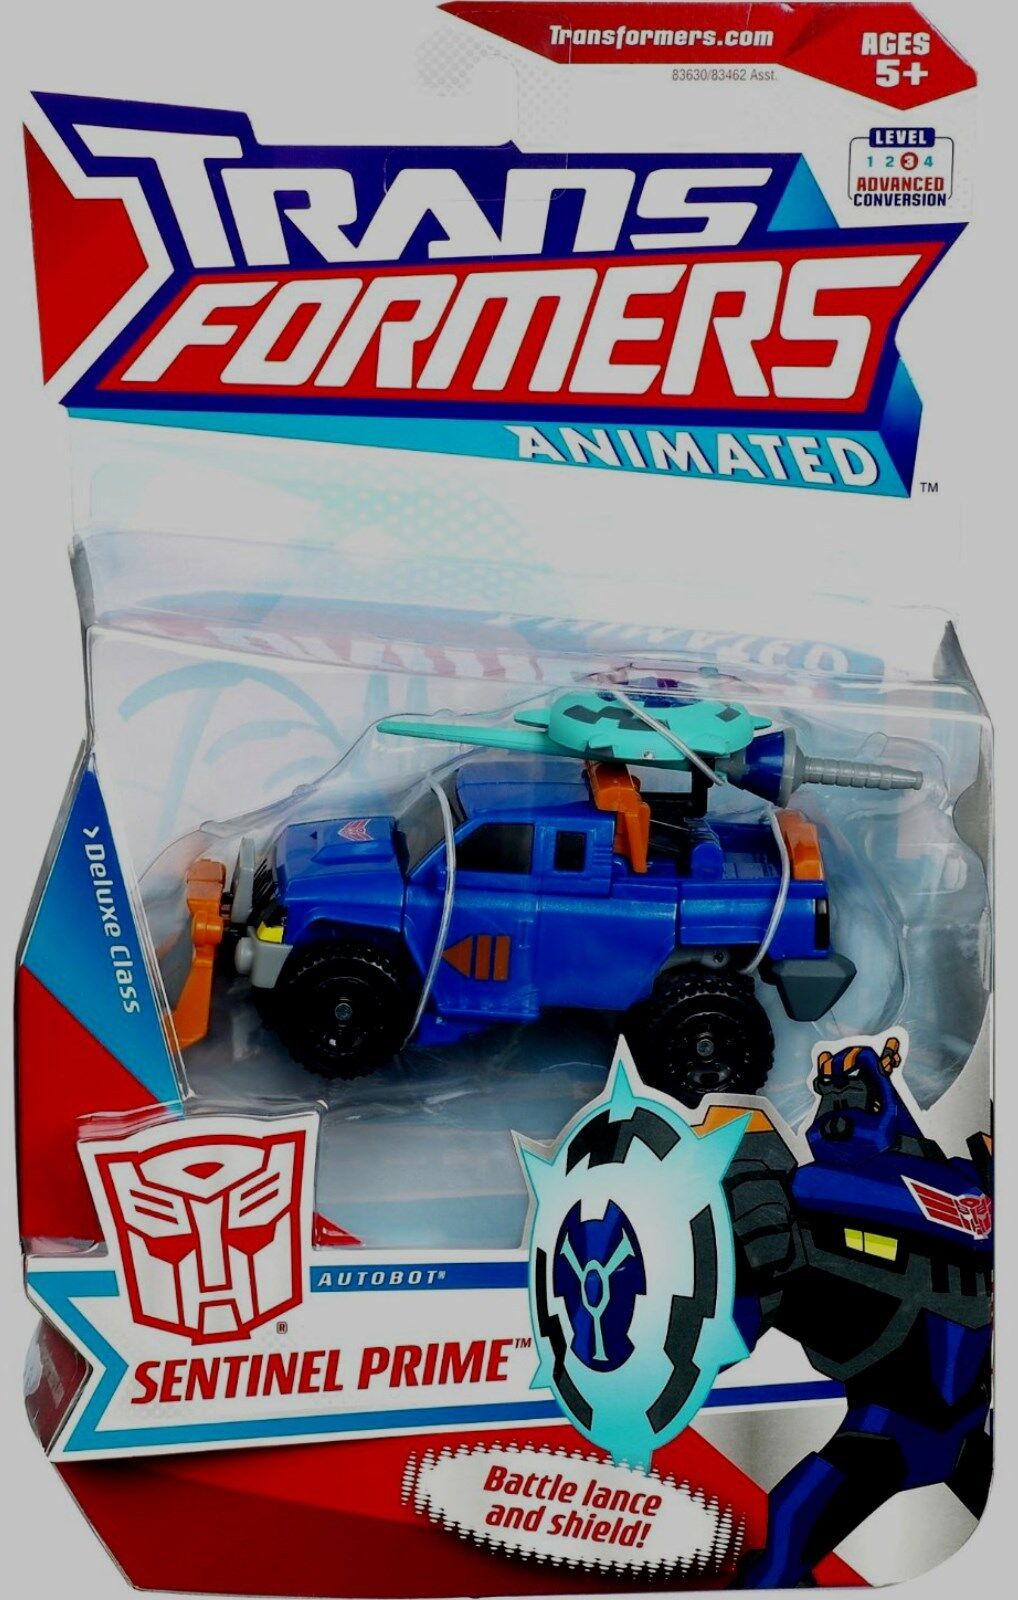 Transformers Animated Deluxe  Class Sentinel Prime 4  neuve sous blister 2008  qualité officielle